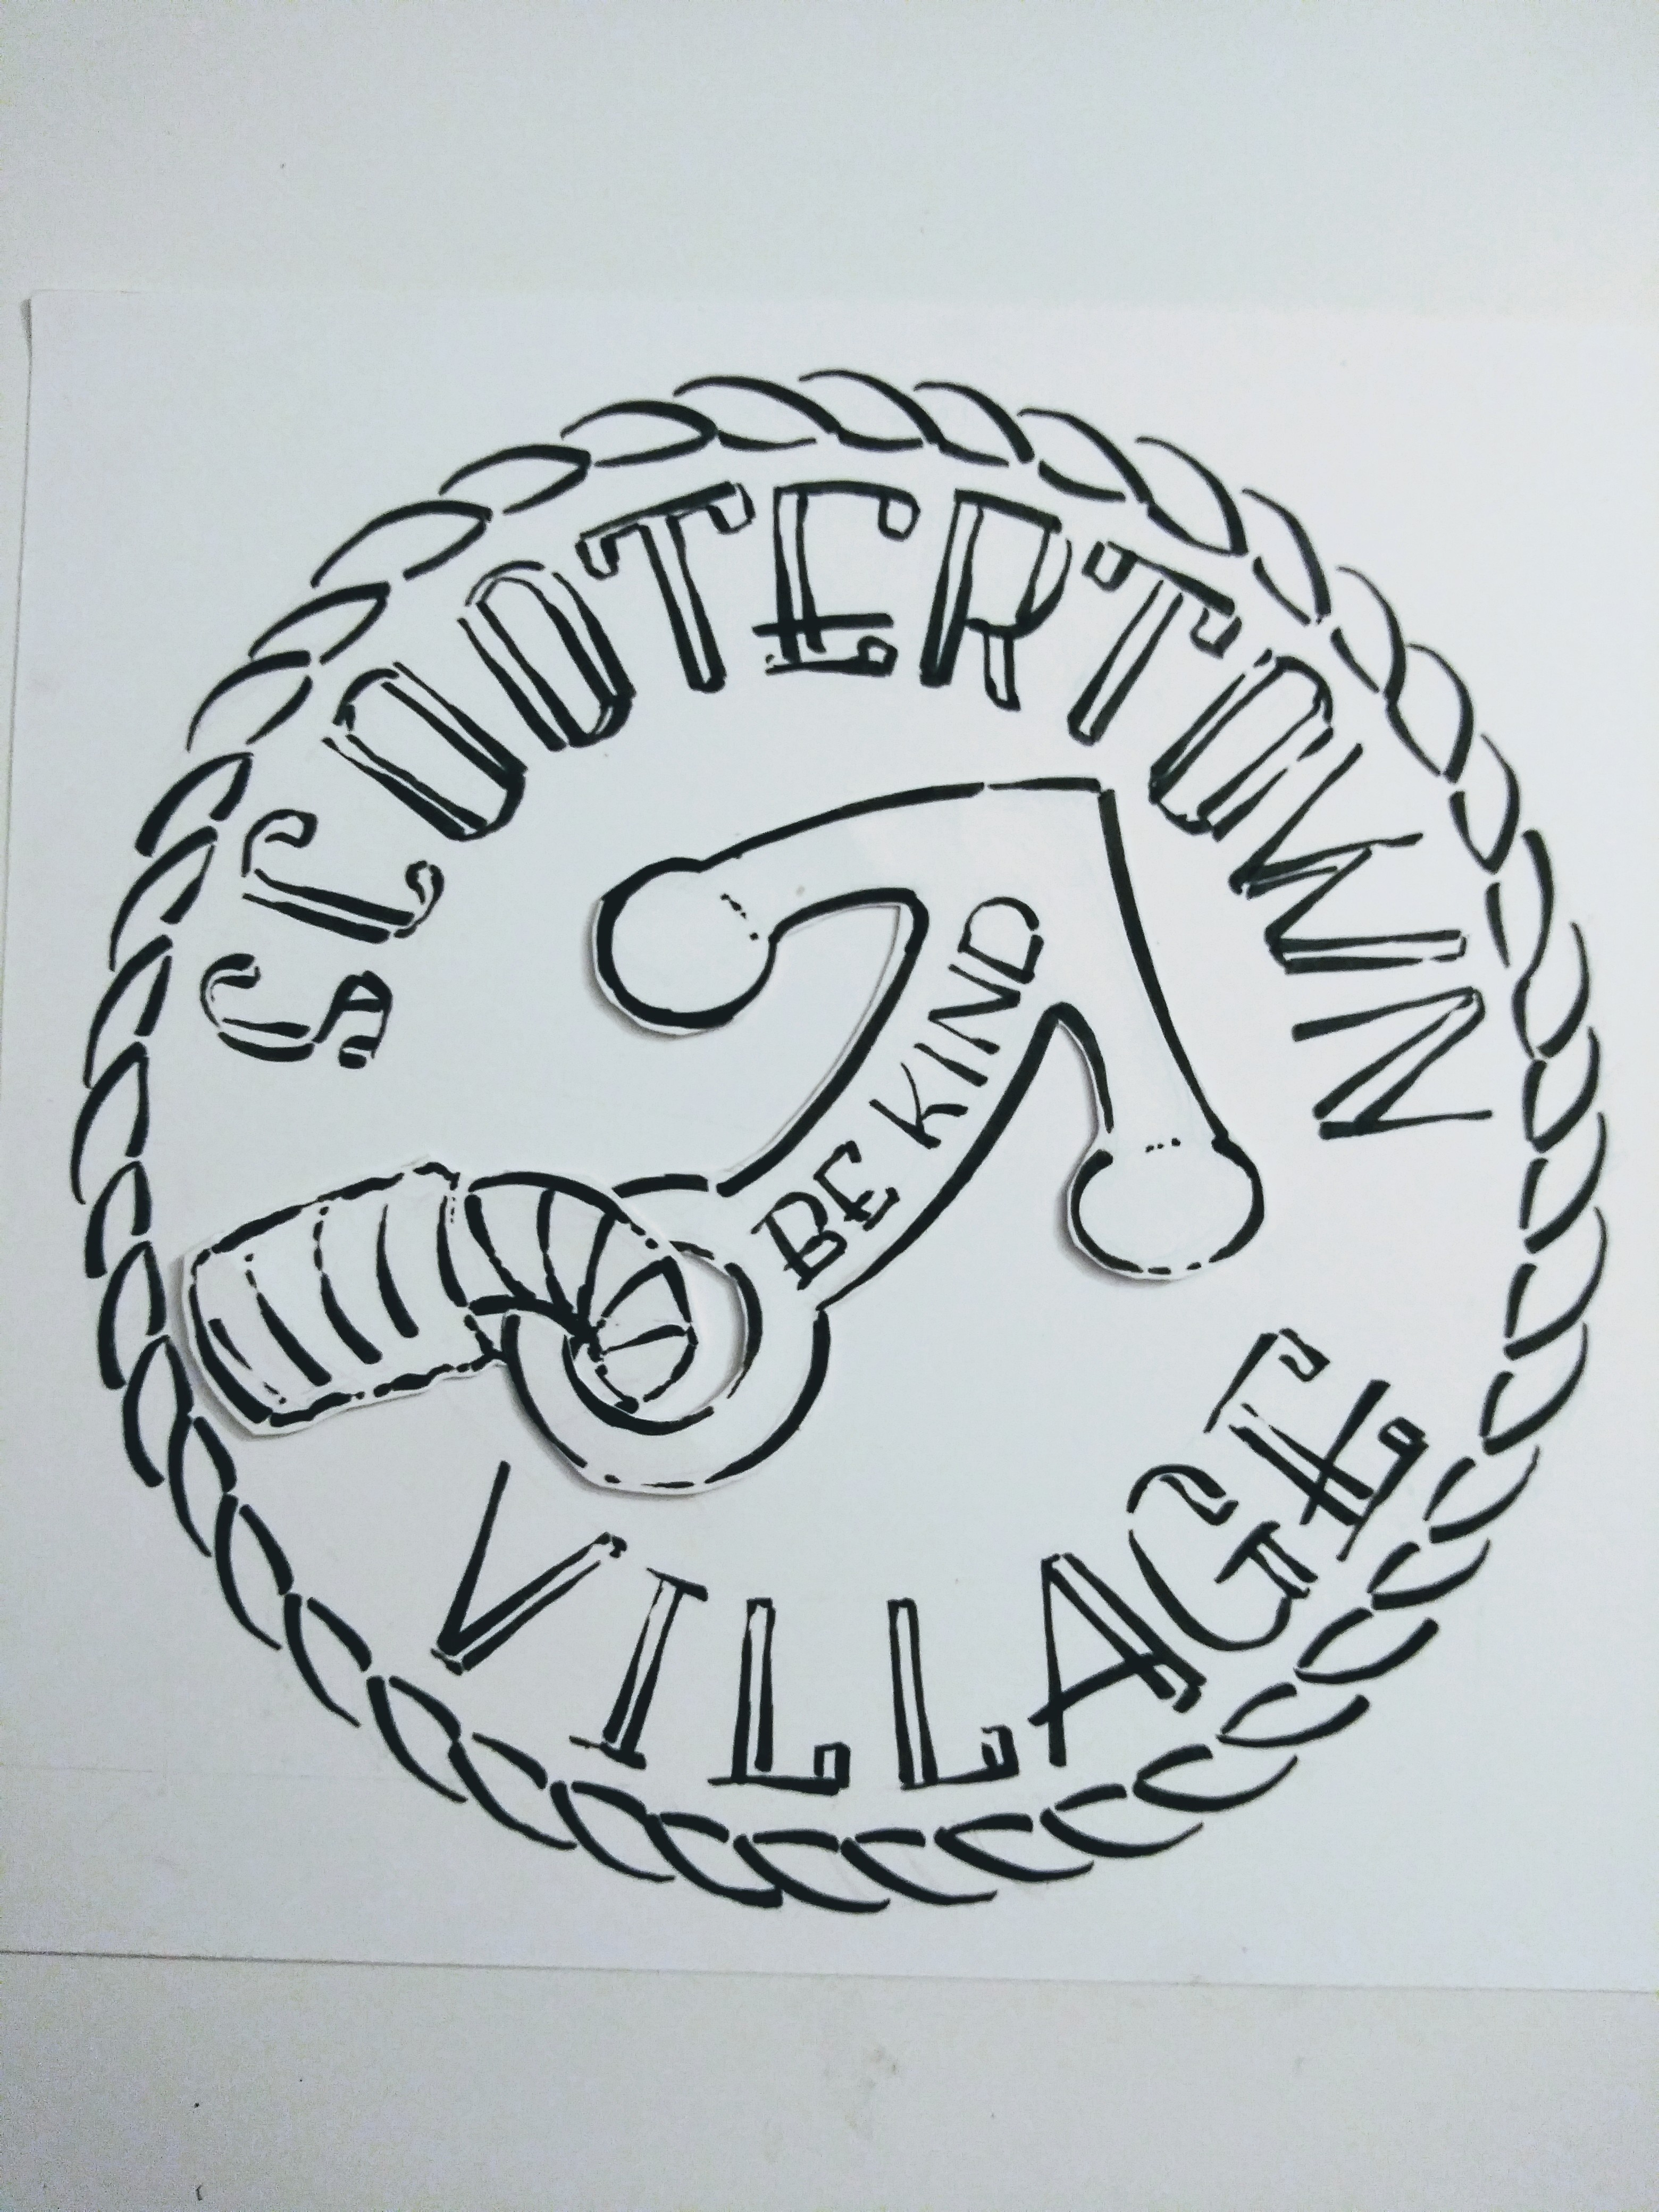 Scootertown seal